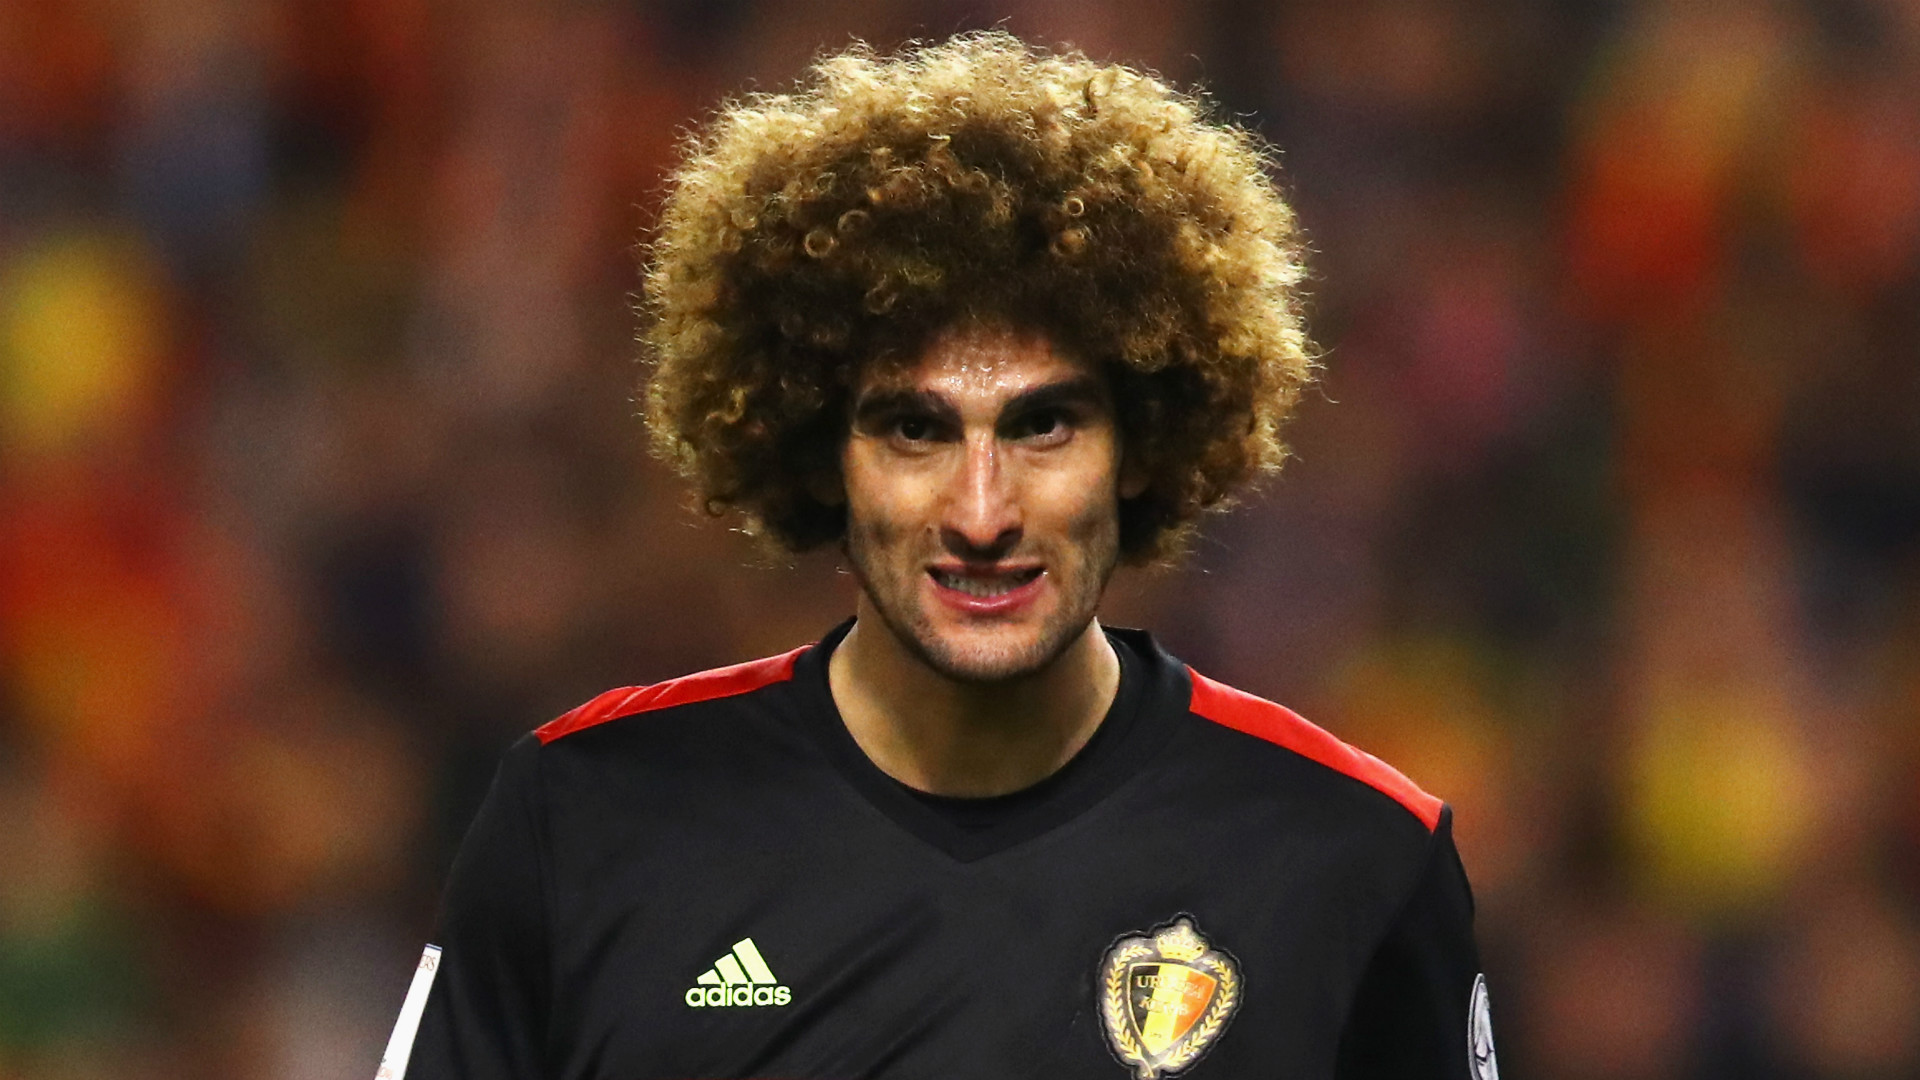 69c67c47bd3 Marouane Fellaini is a professional footballer from Belgium who is widely  known and easily identifiable